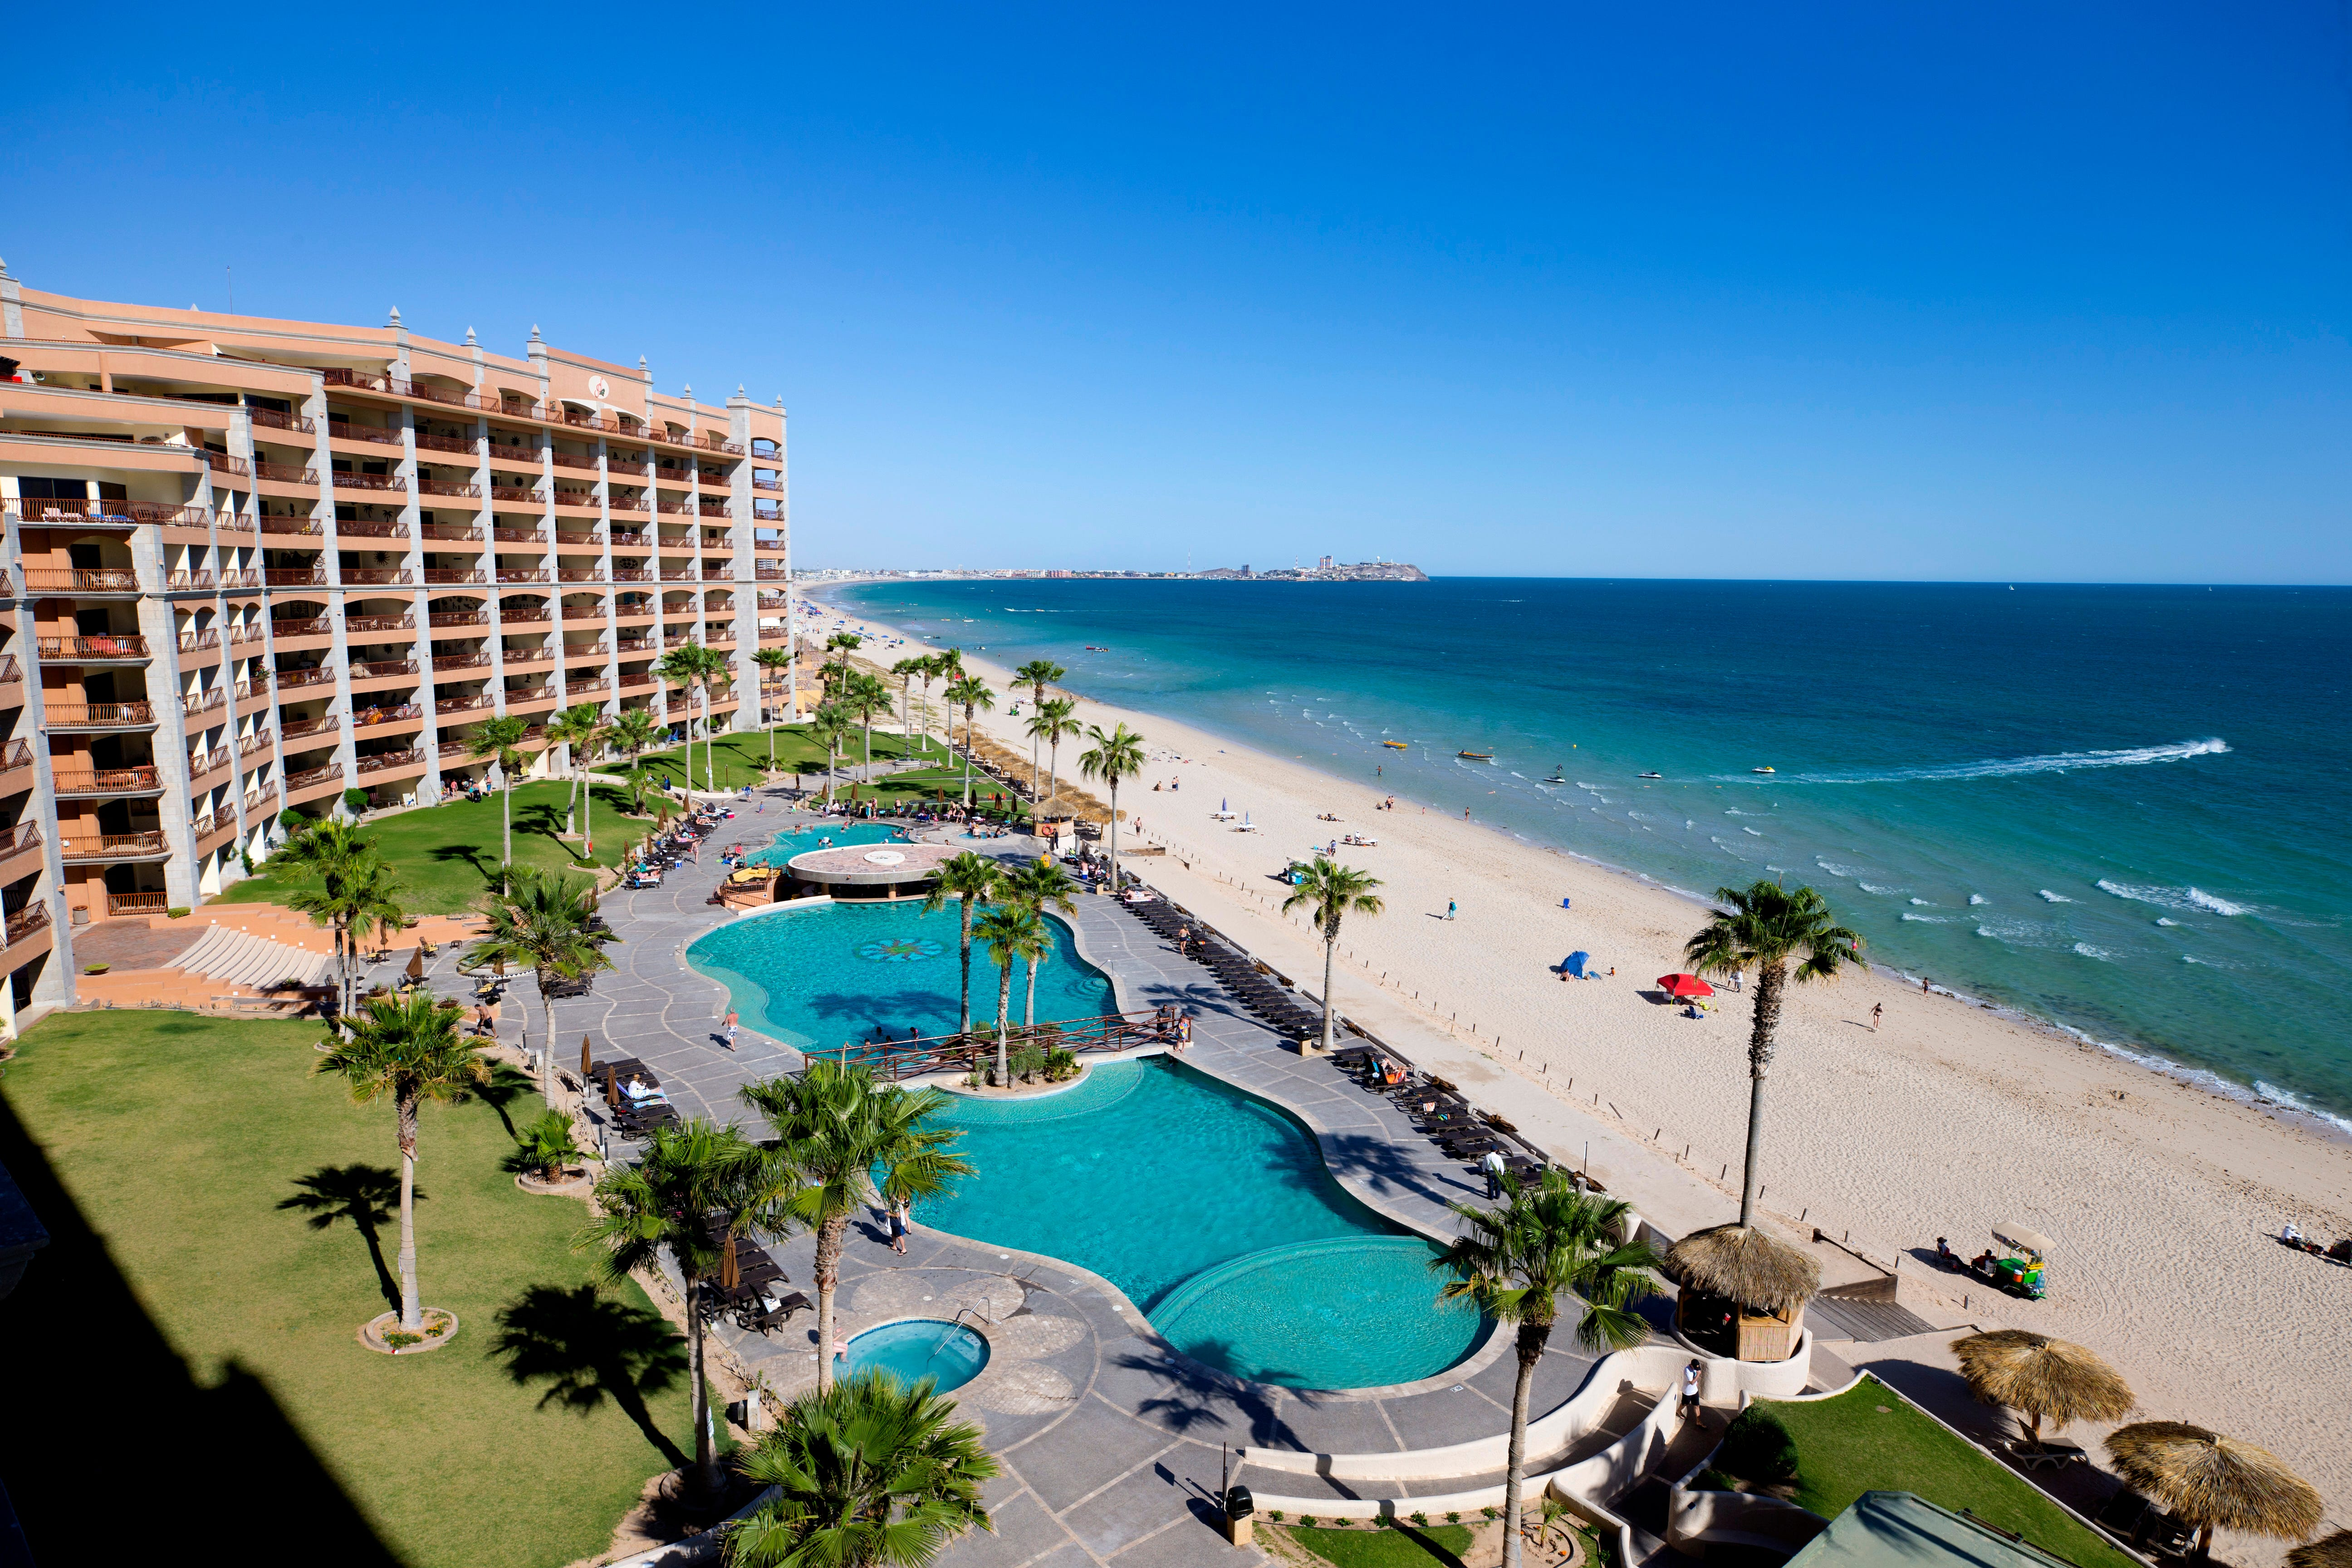 Puerto Penasco Mexico Gives Tourist A Oceanfront View On